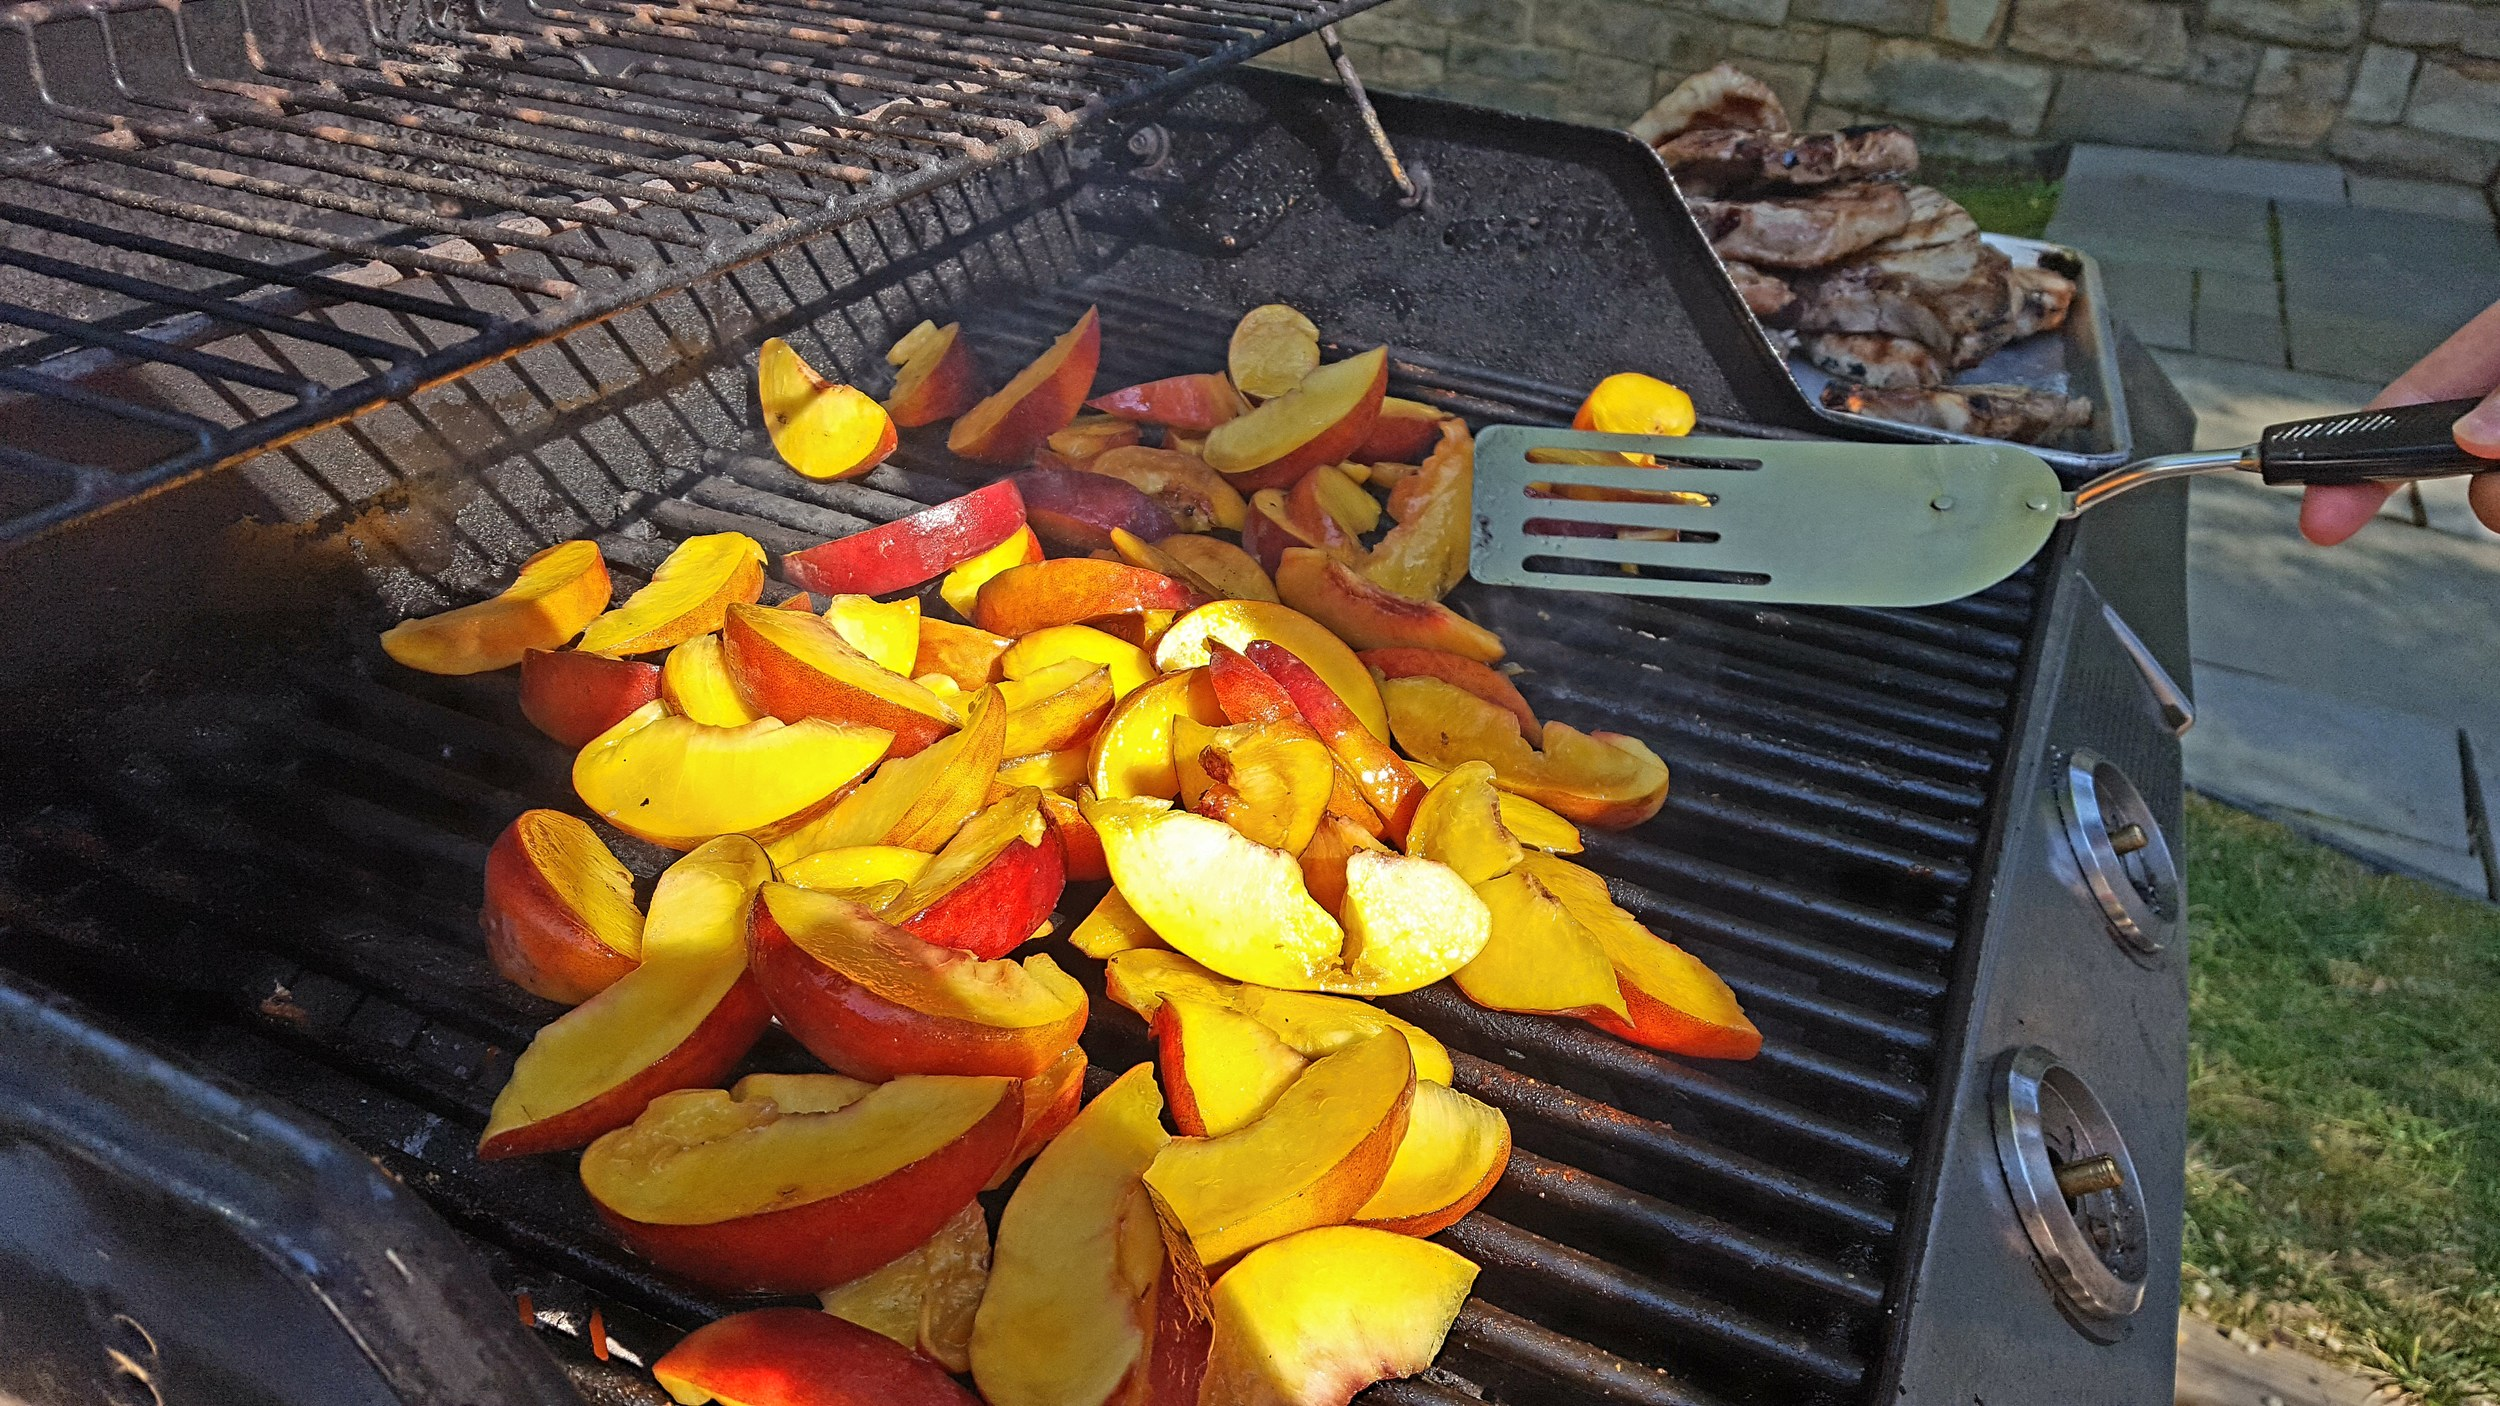 Grilled peaches!!